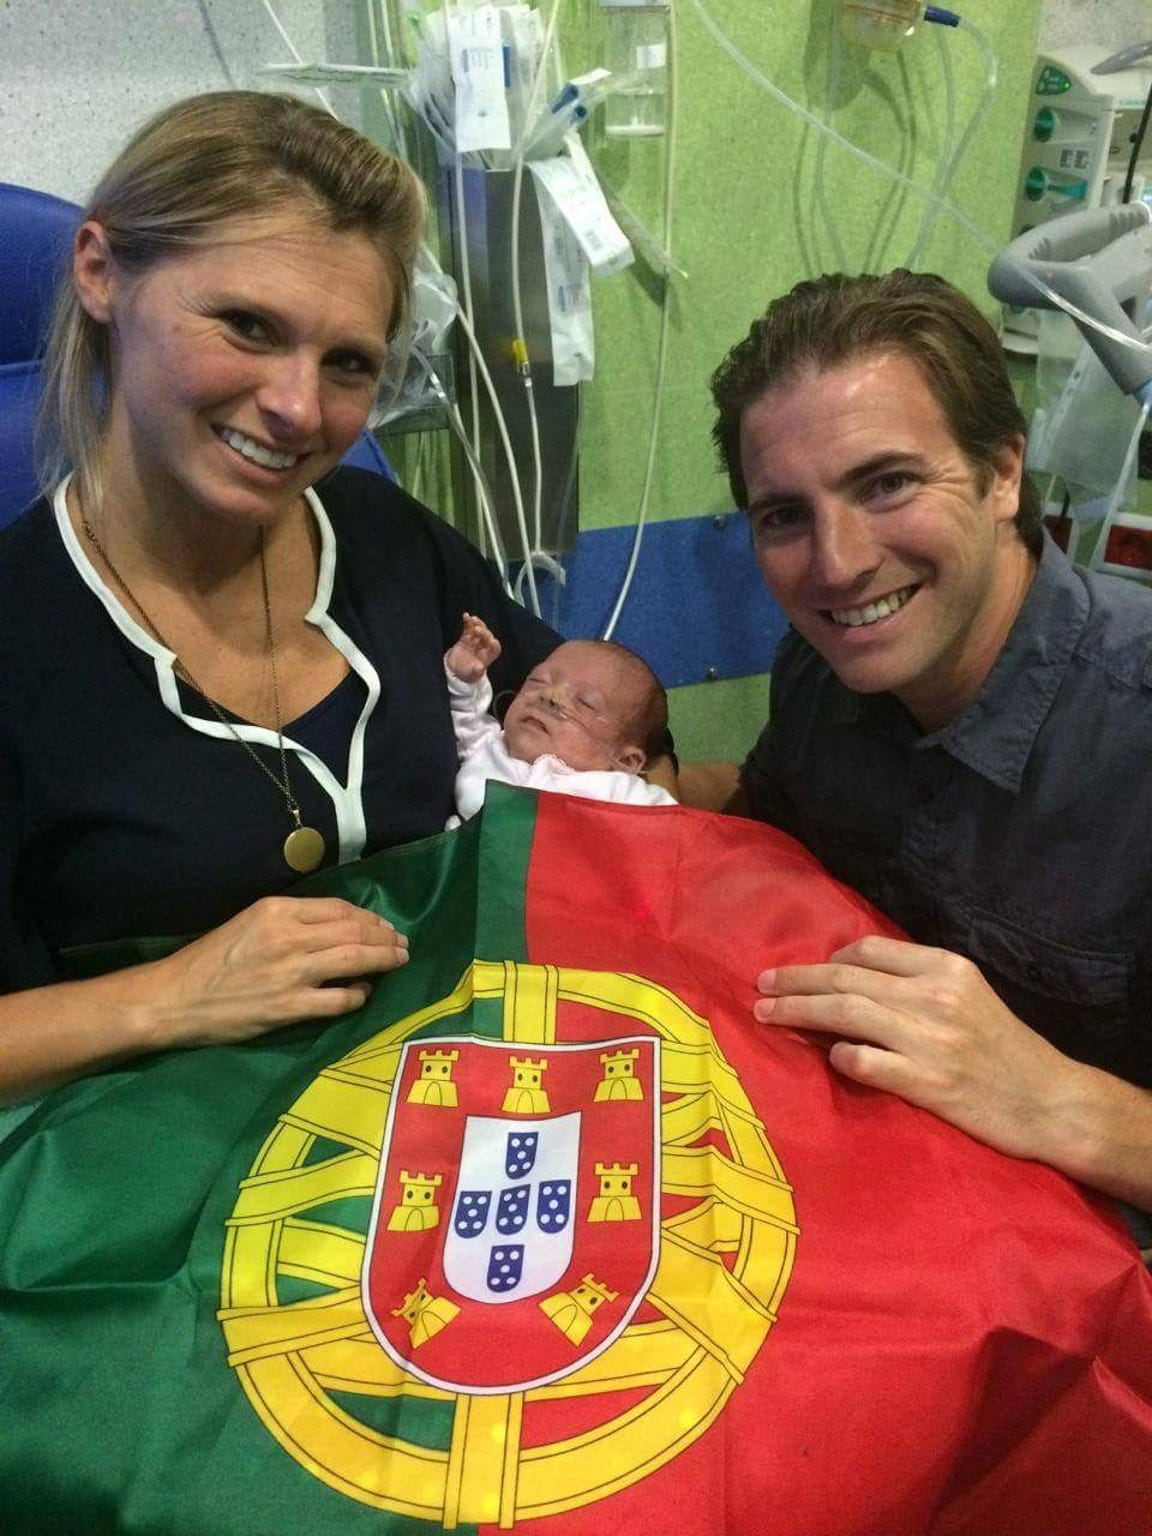 The Spratt family has fond memories of the care their daughter received in Portugal.